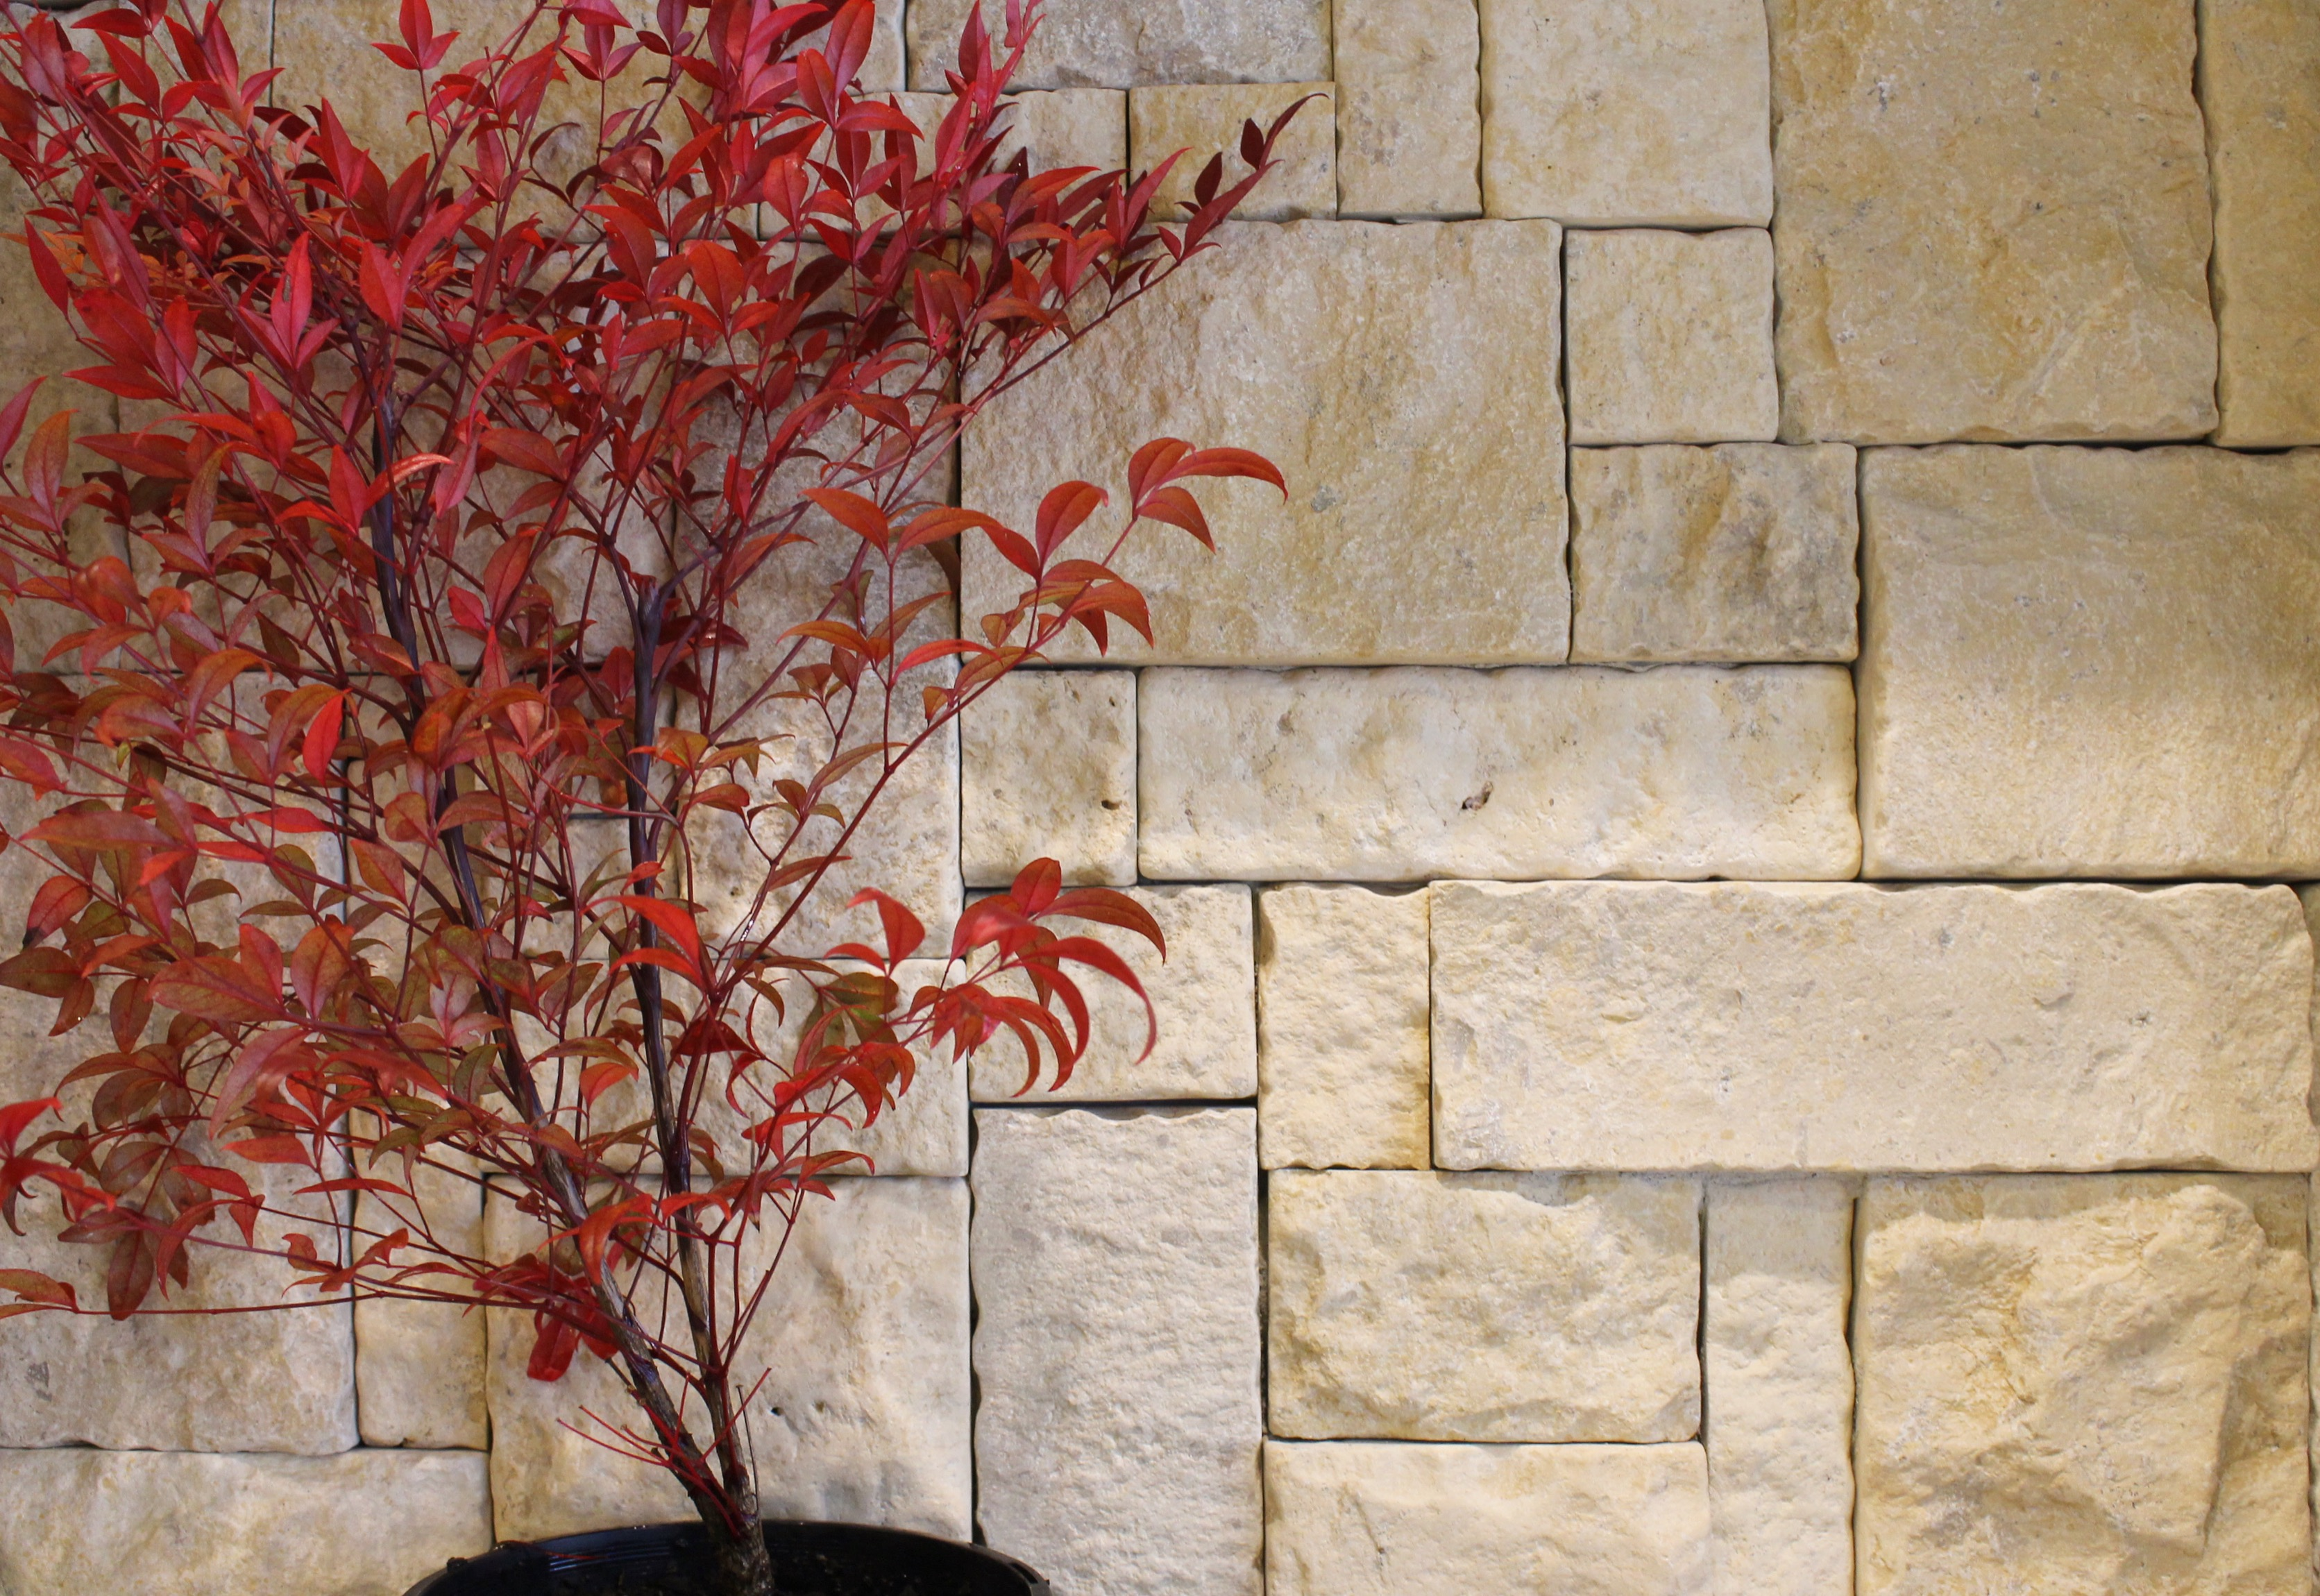 Feature wall design using Colonial Simpson stone wall claddings with a maple tree